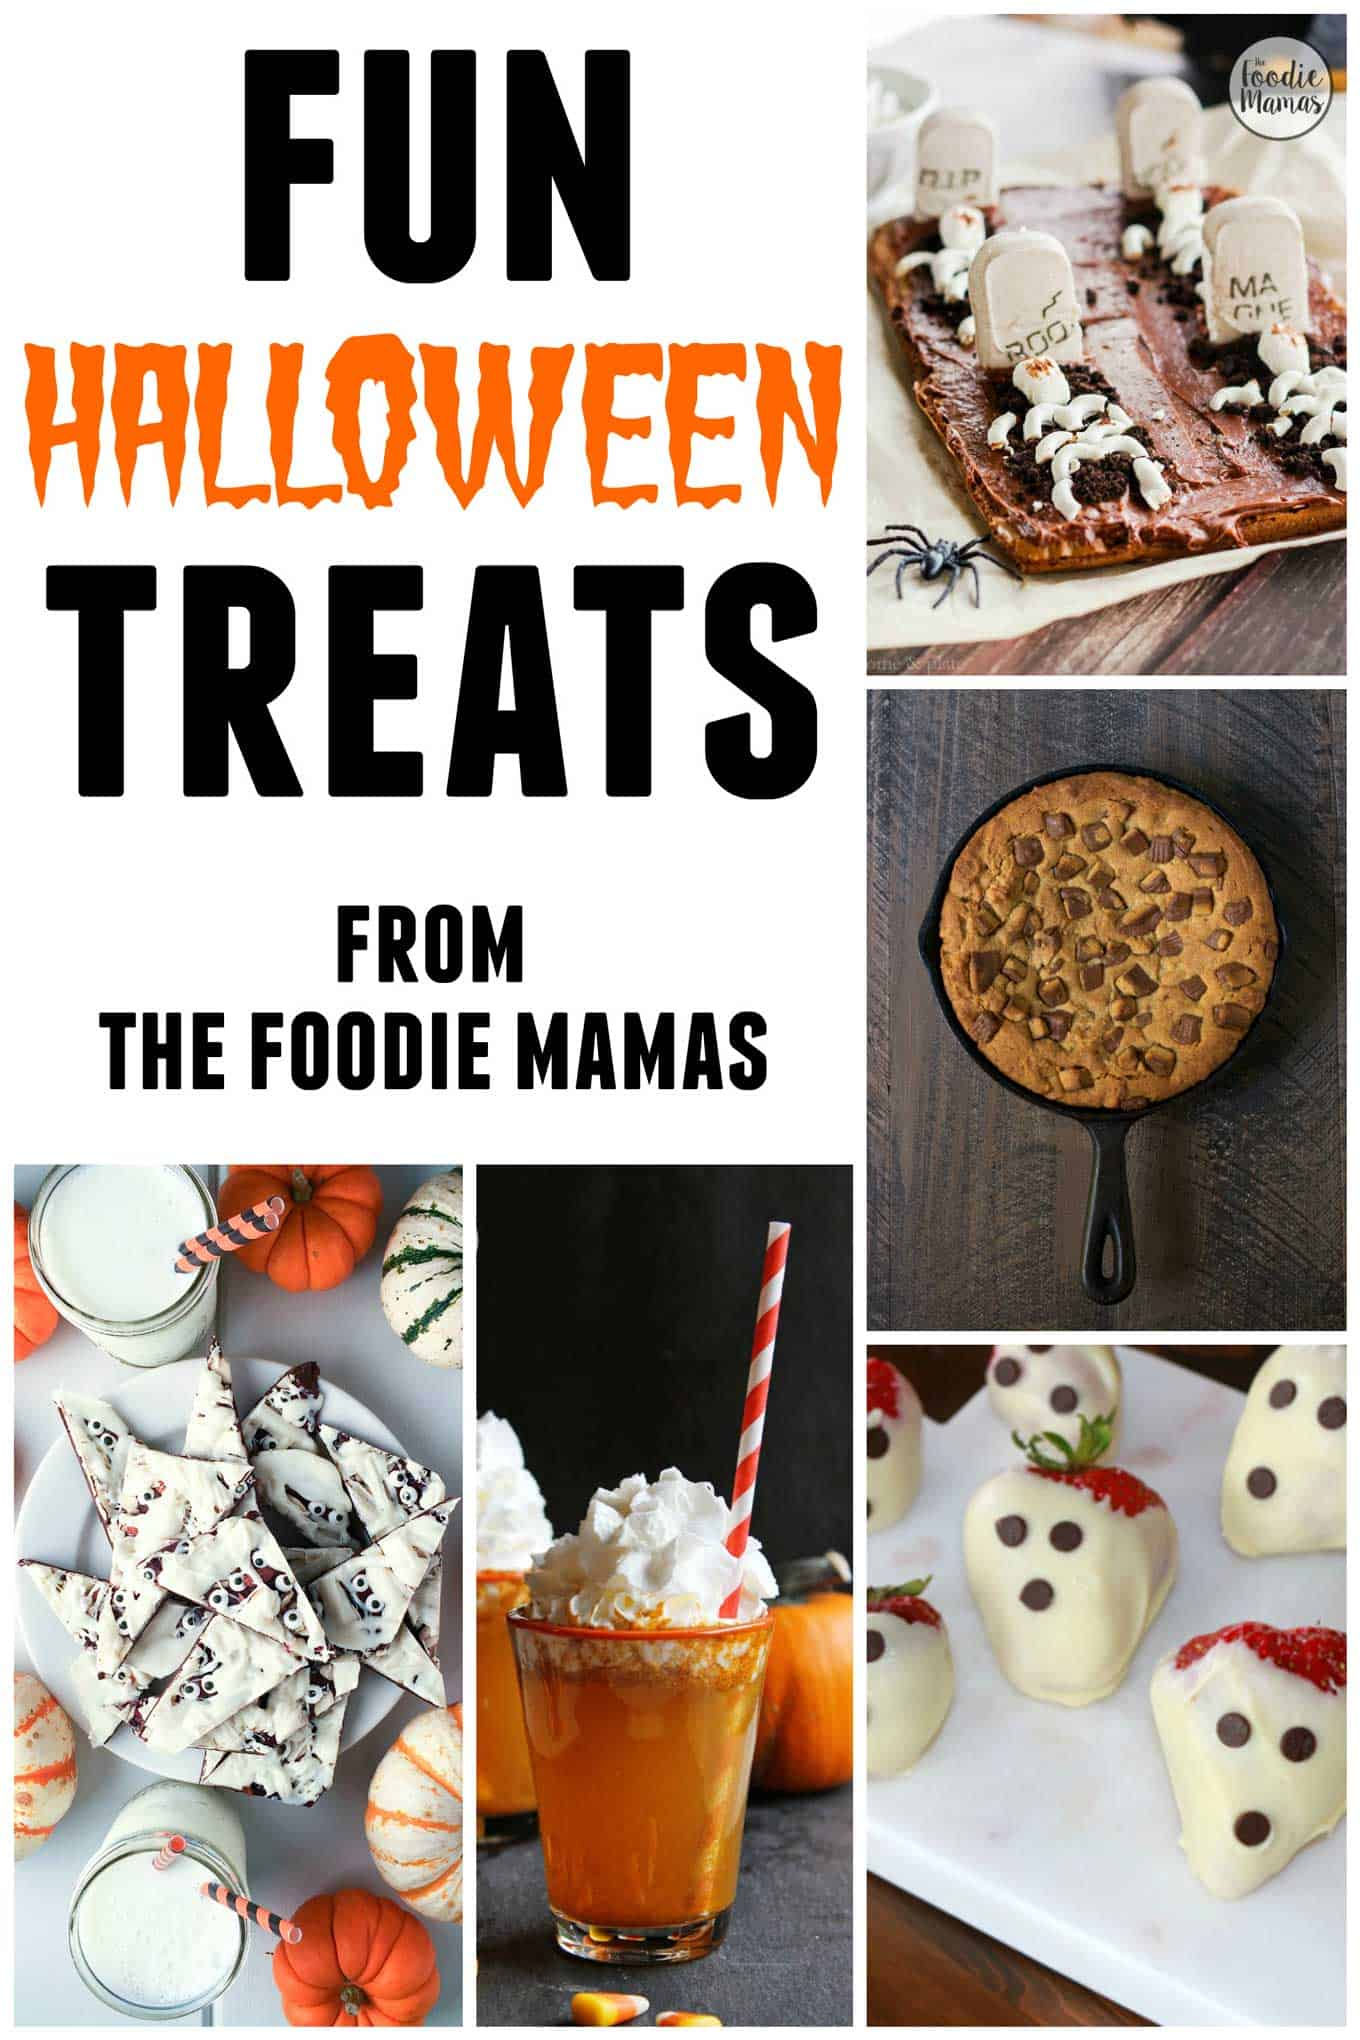 Awesome, family friendly Halloween treat recipes from The Foodie Mamas! Sure to make your Halloween party the best on the block!